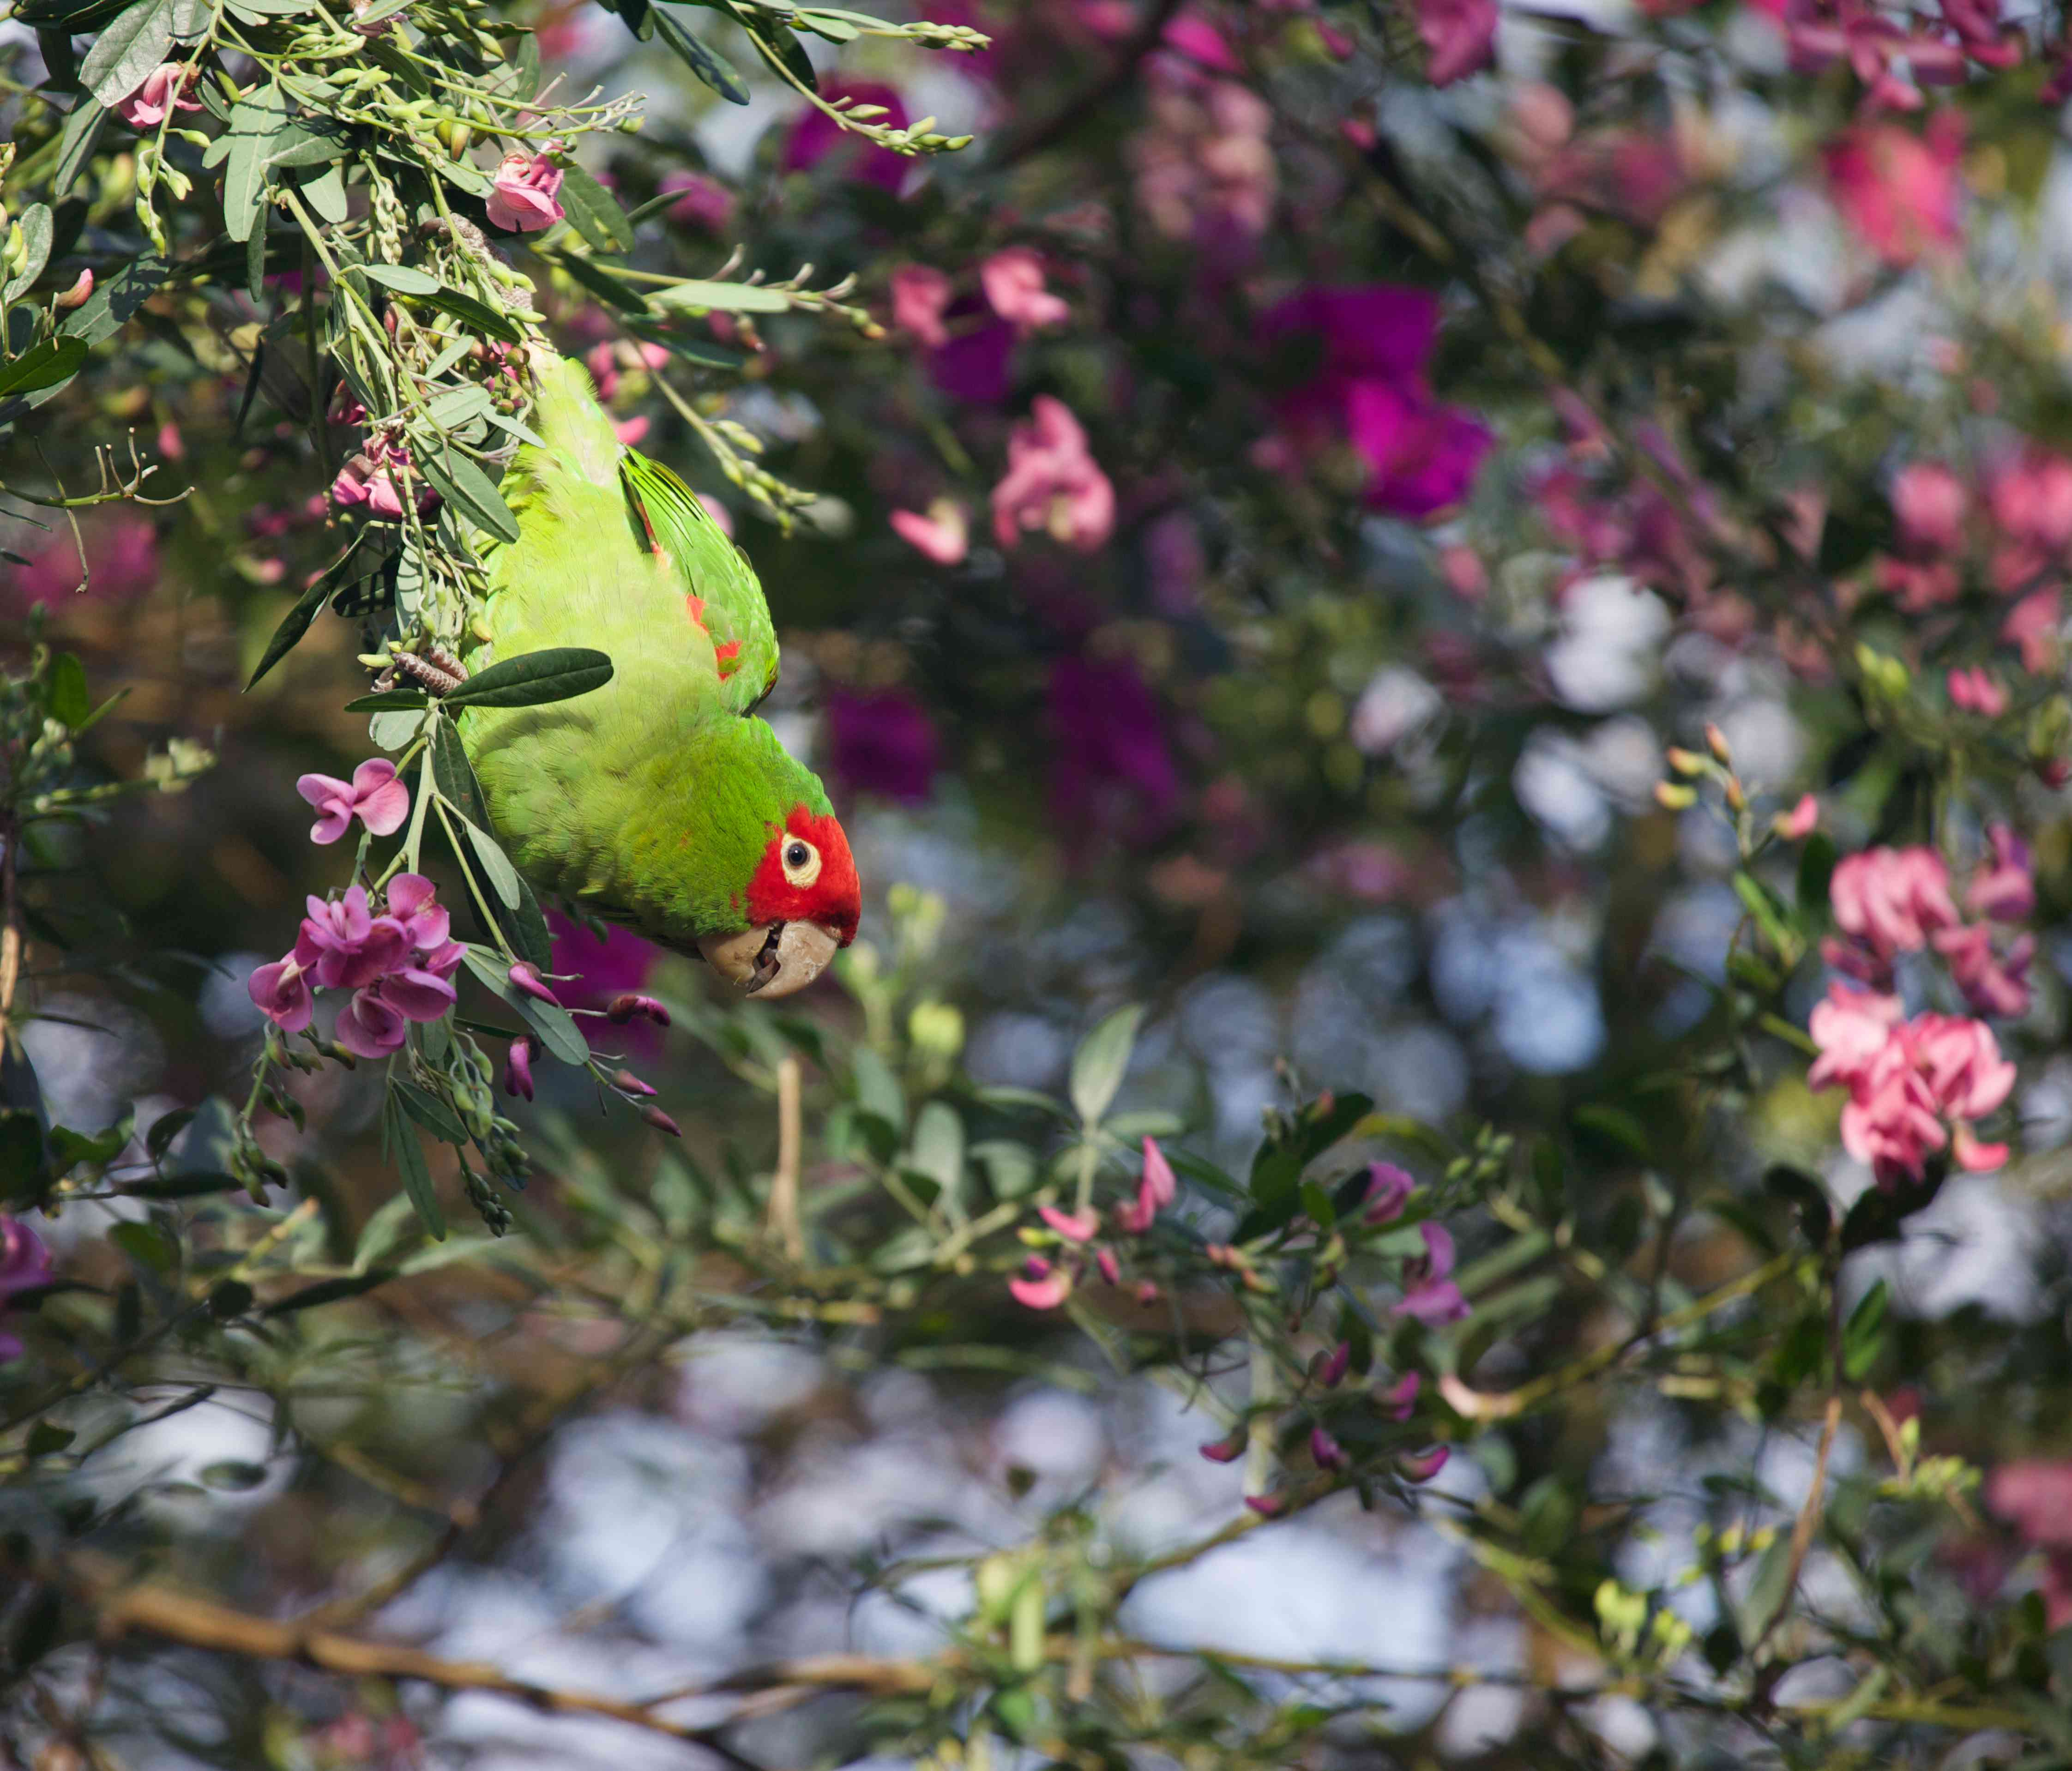 cherry-headed conure in a tree